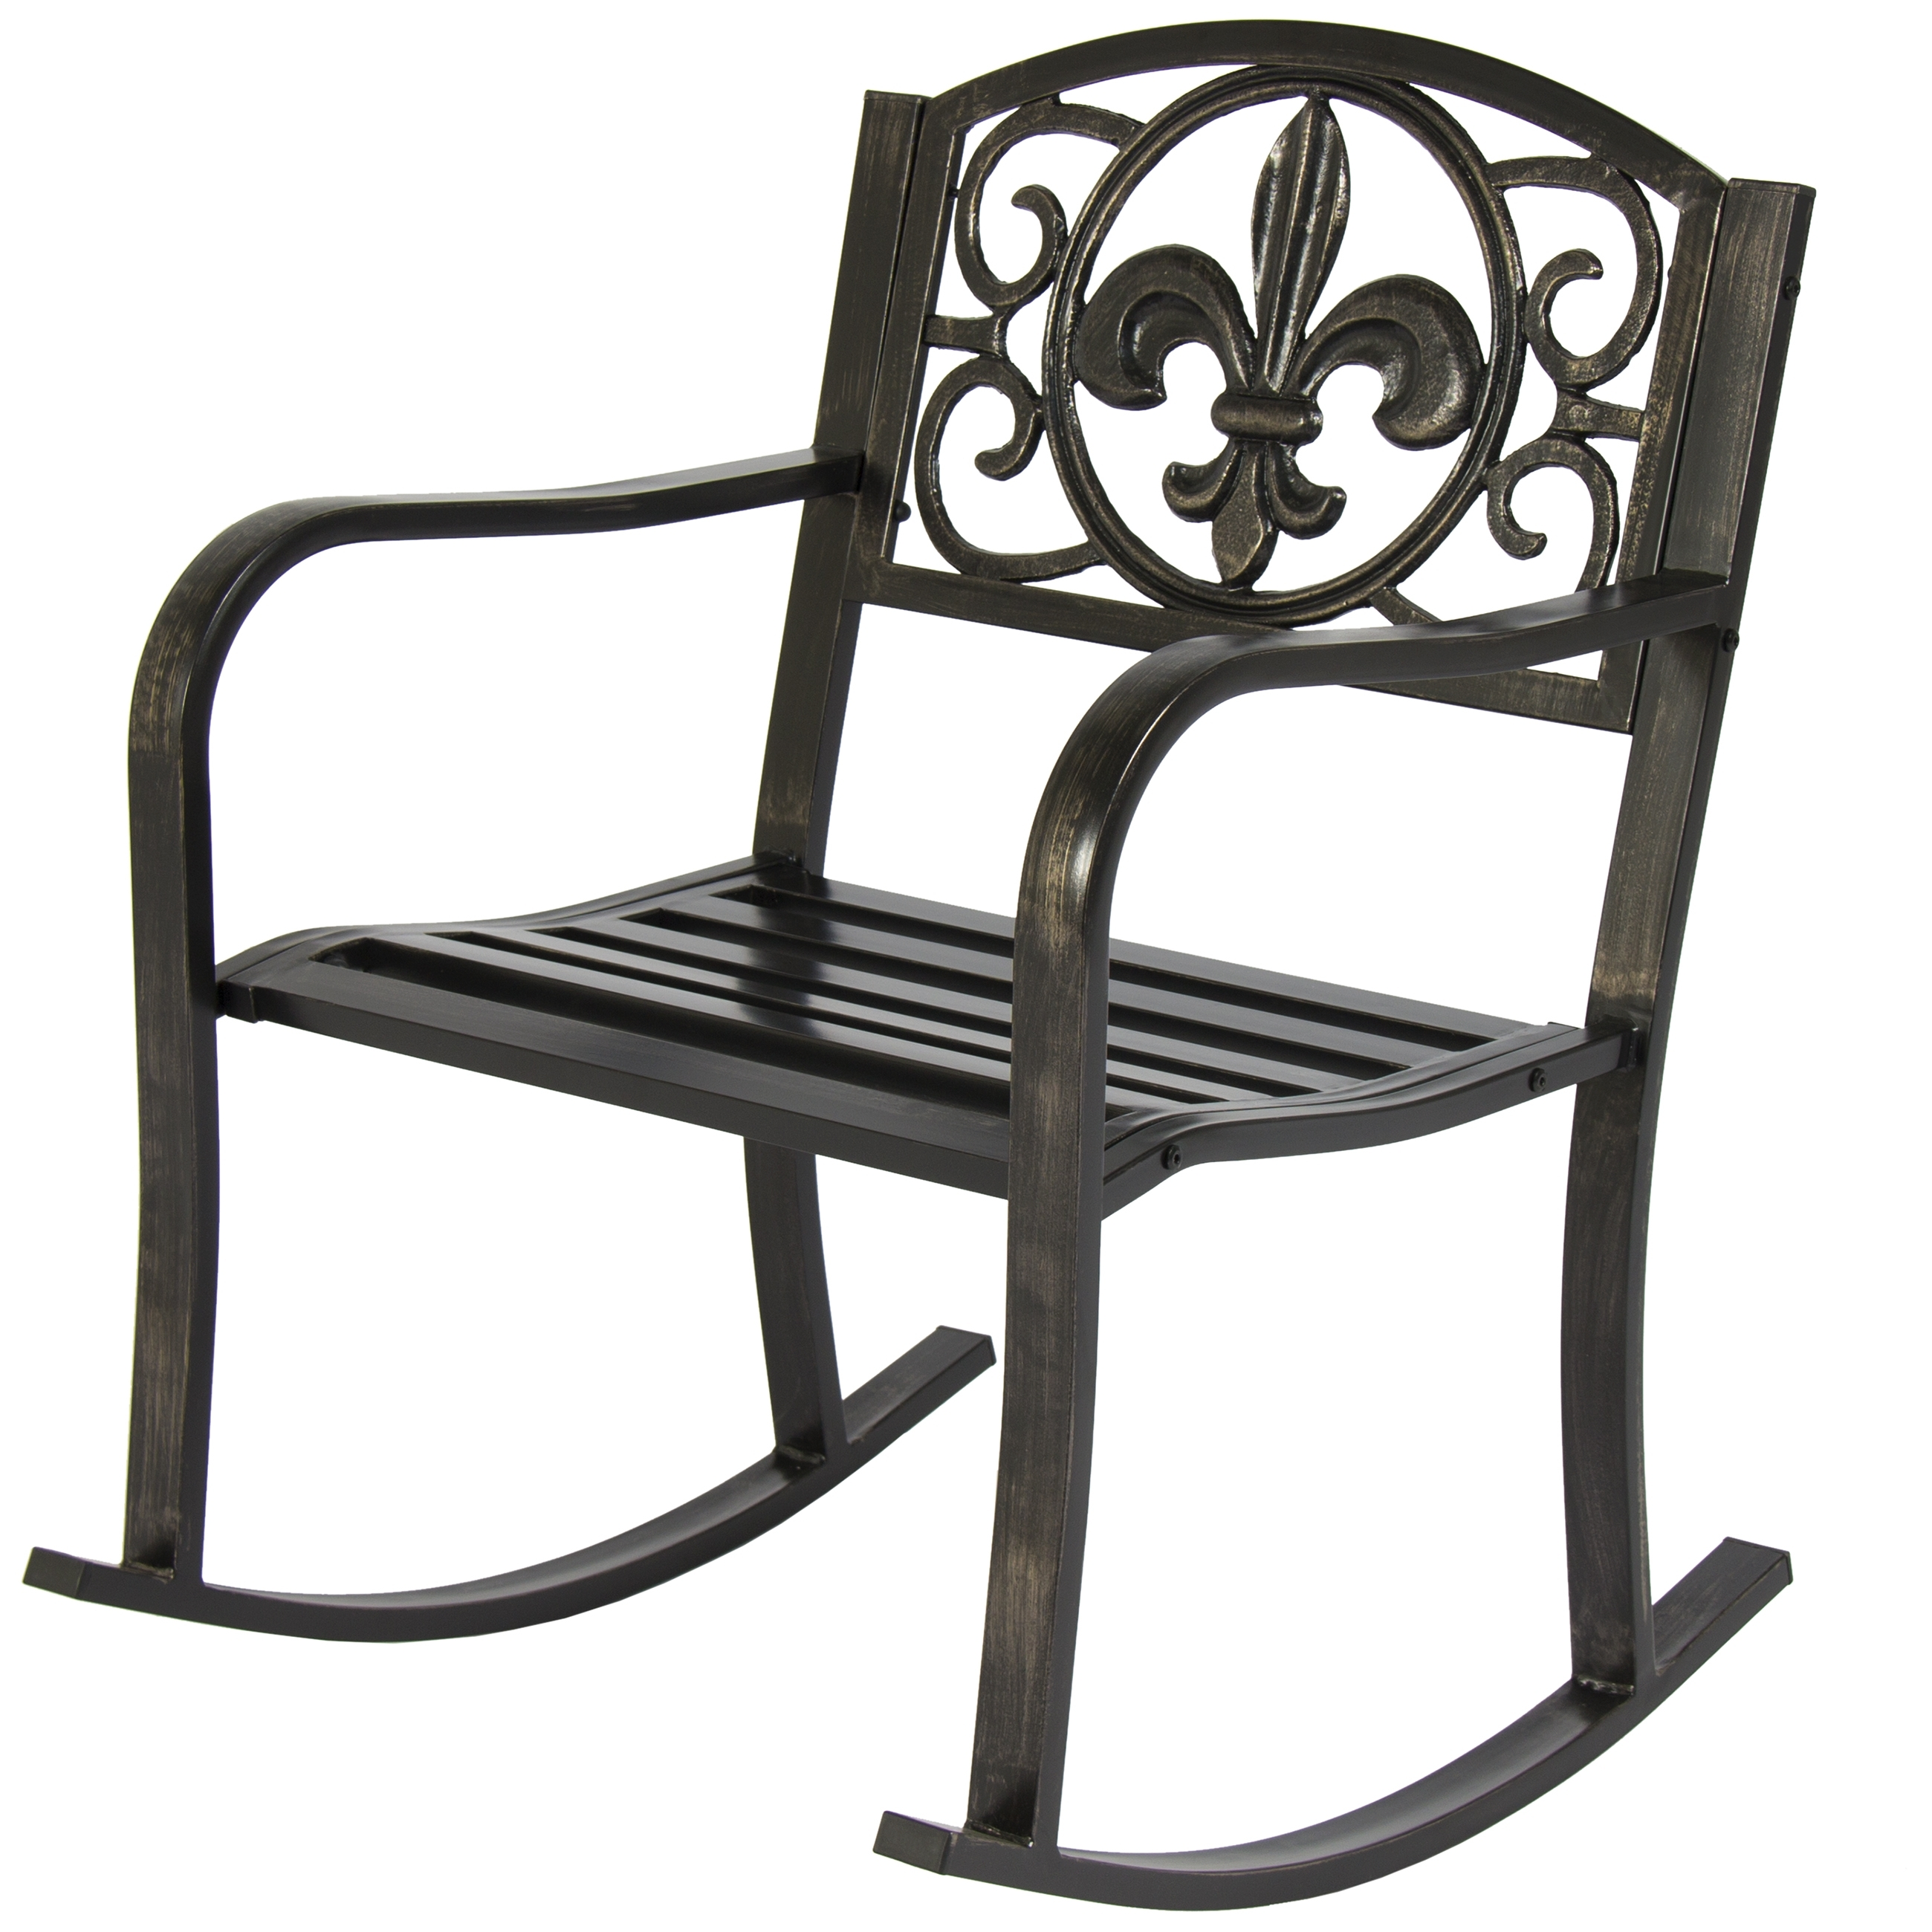 Popular Patio Metal Rocking Chairs With Best Choice Products Metal Rocking Chair Seat For Patio, Porch, Deck (View 2 of 15)